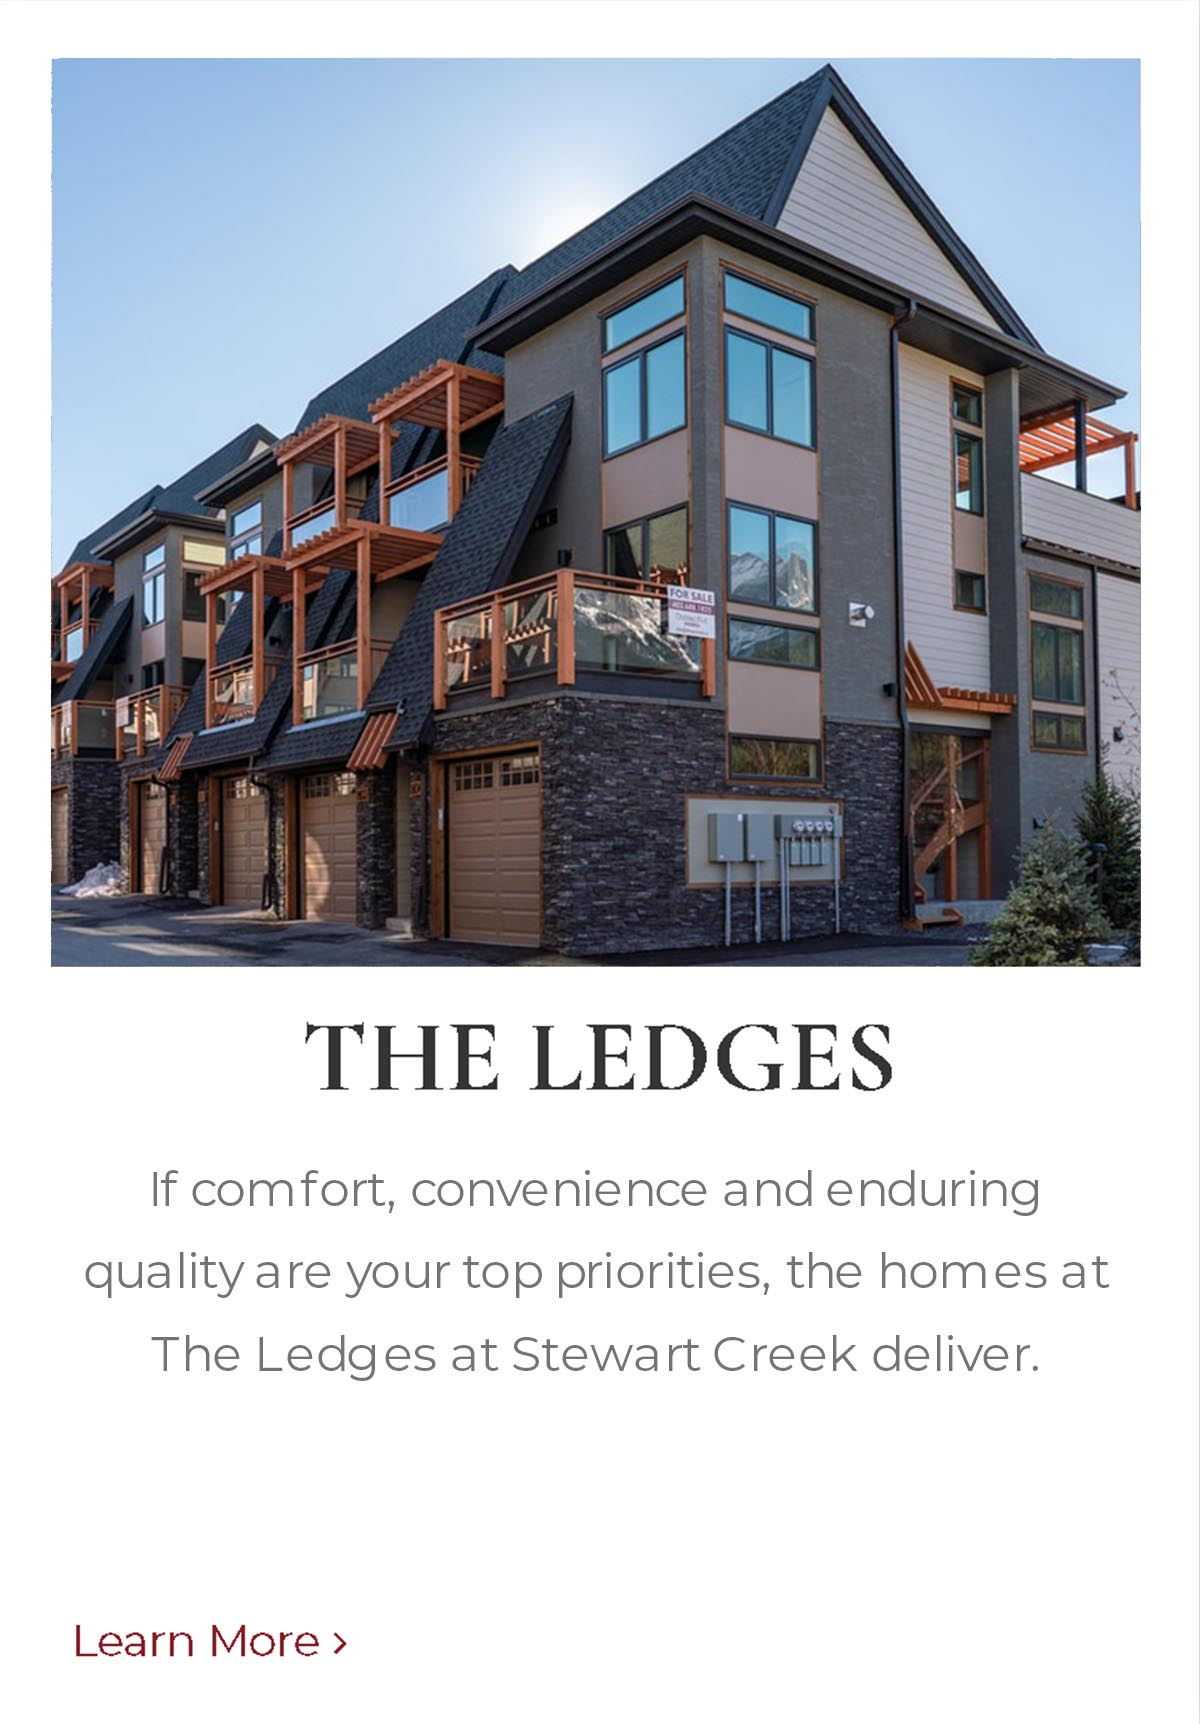 The Ledges, mountain homes built by Distinctive Homes